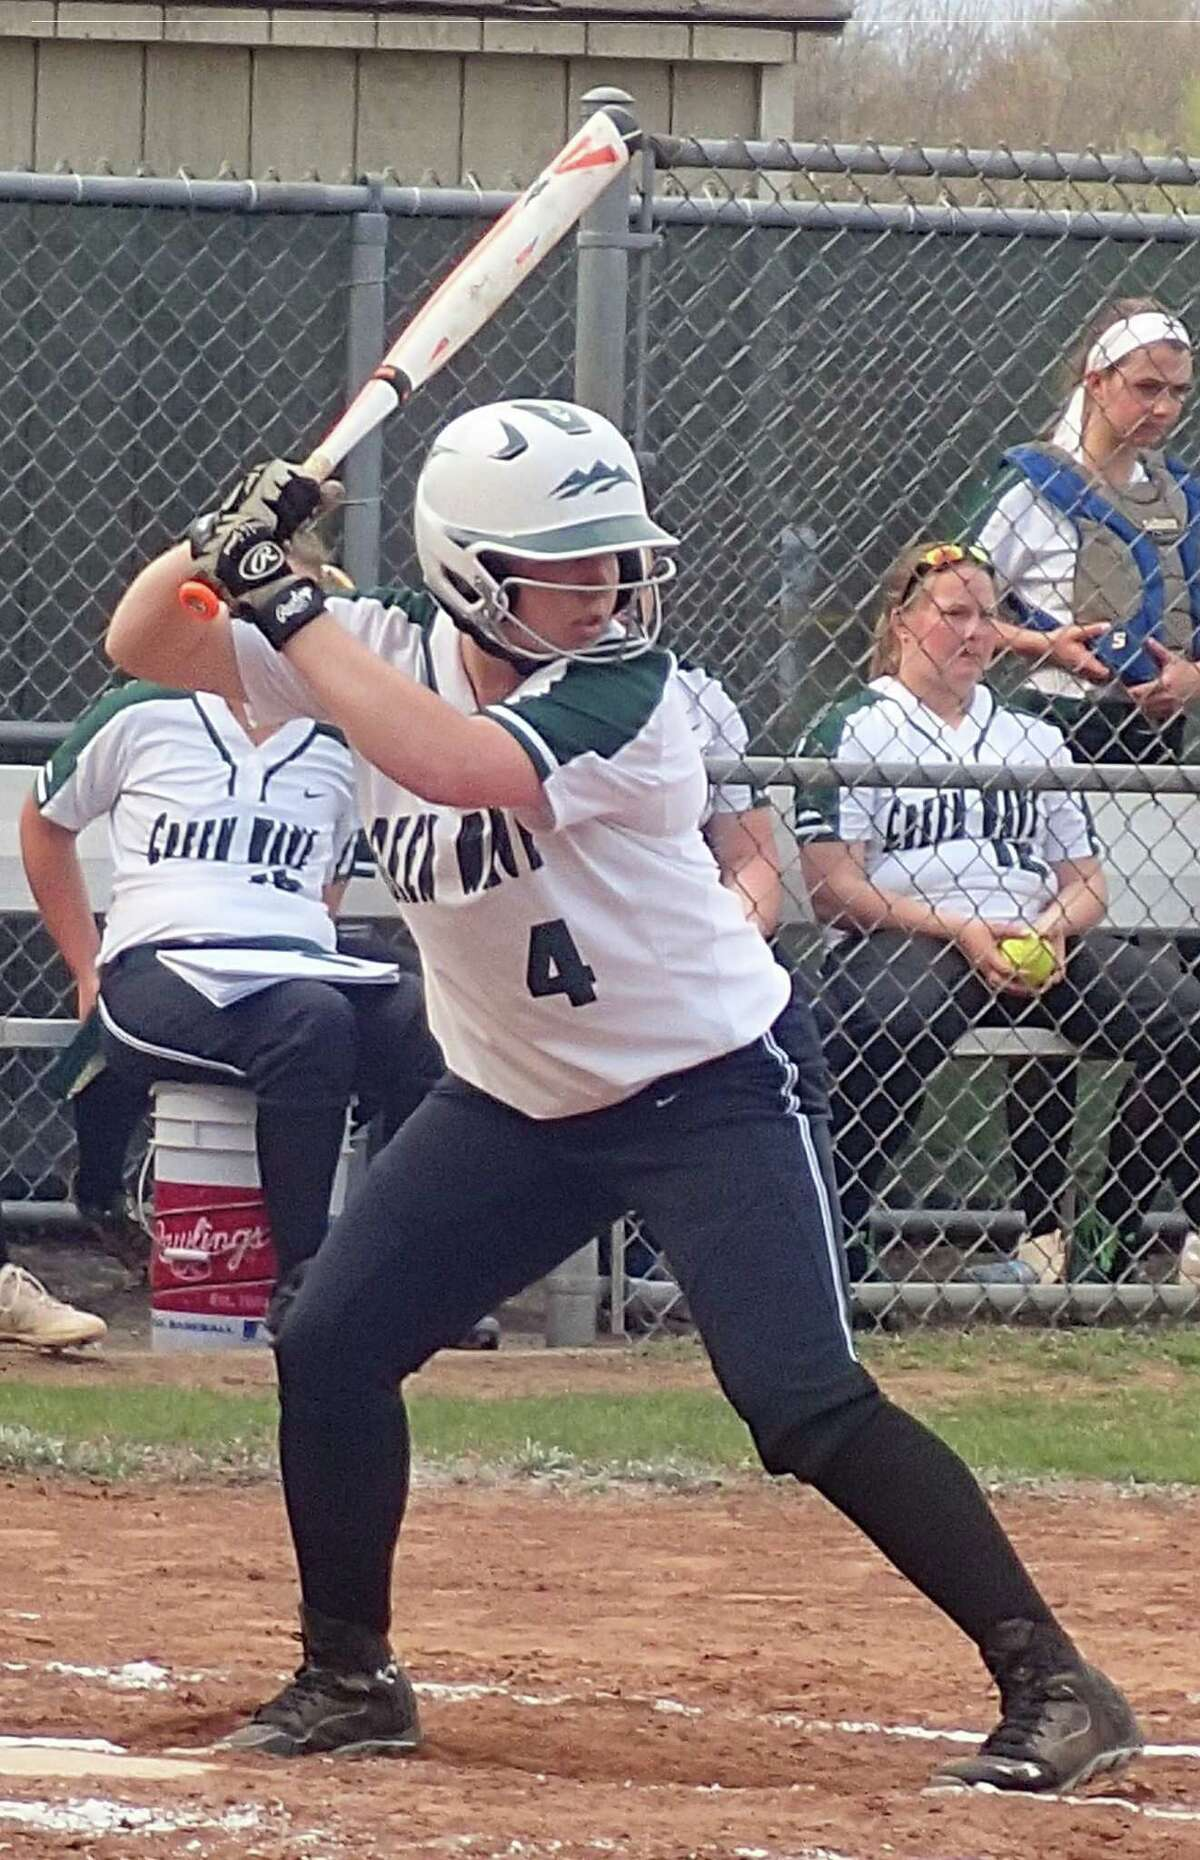 New Milford shortstop Avery Kelly had a home run, a triple and two doubles in the Green Wave's 9-2 softball victory over Bunnell at New Milford High School on April 25, 2016.